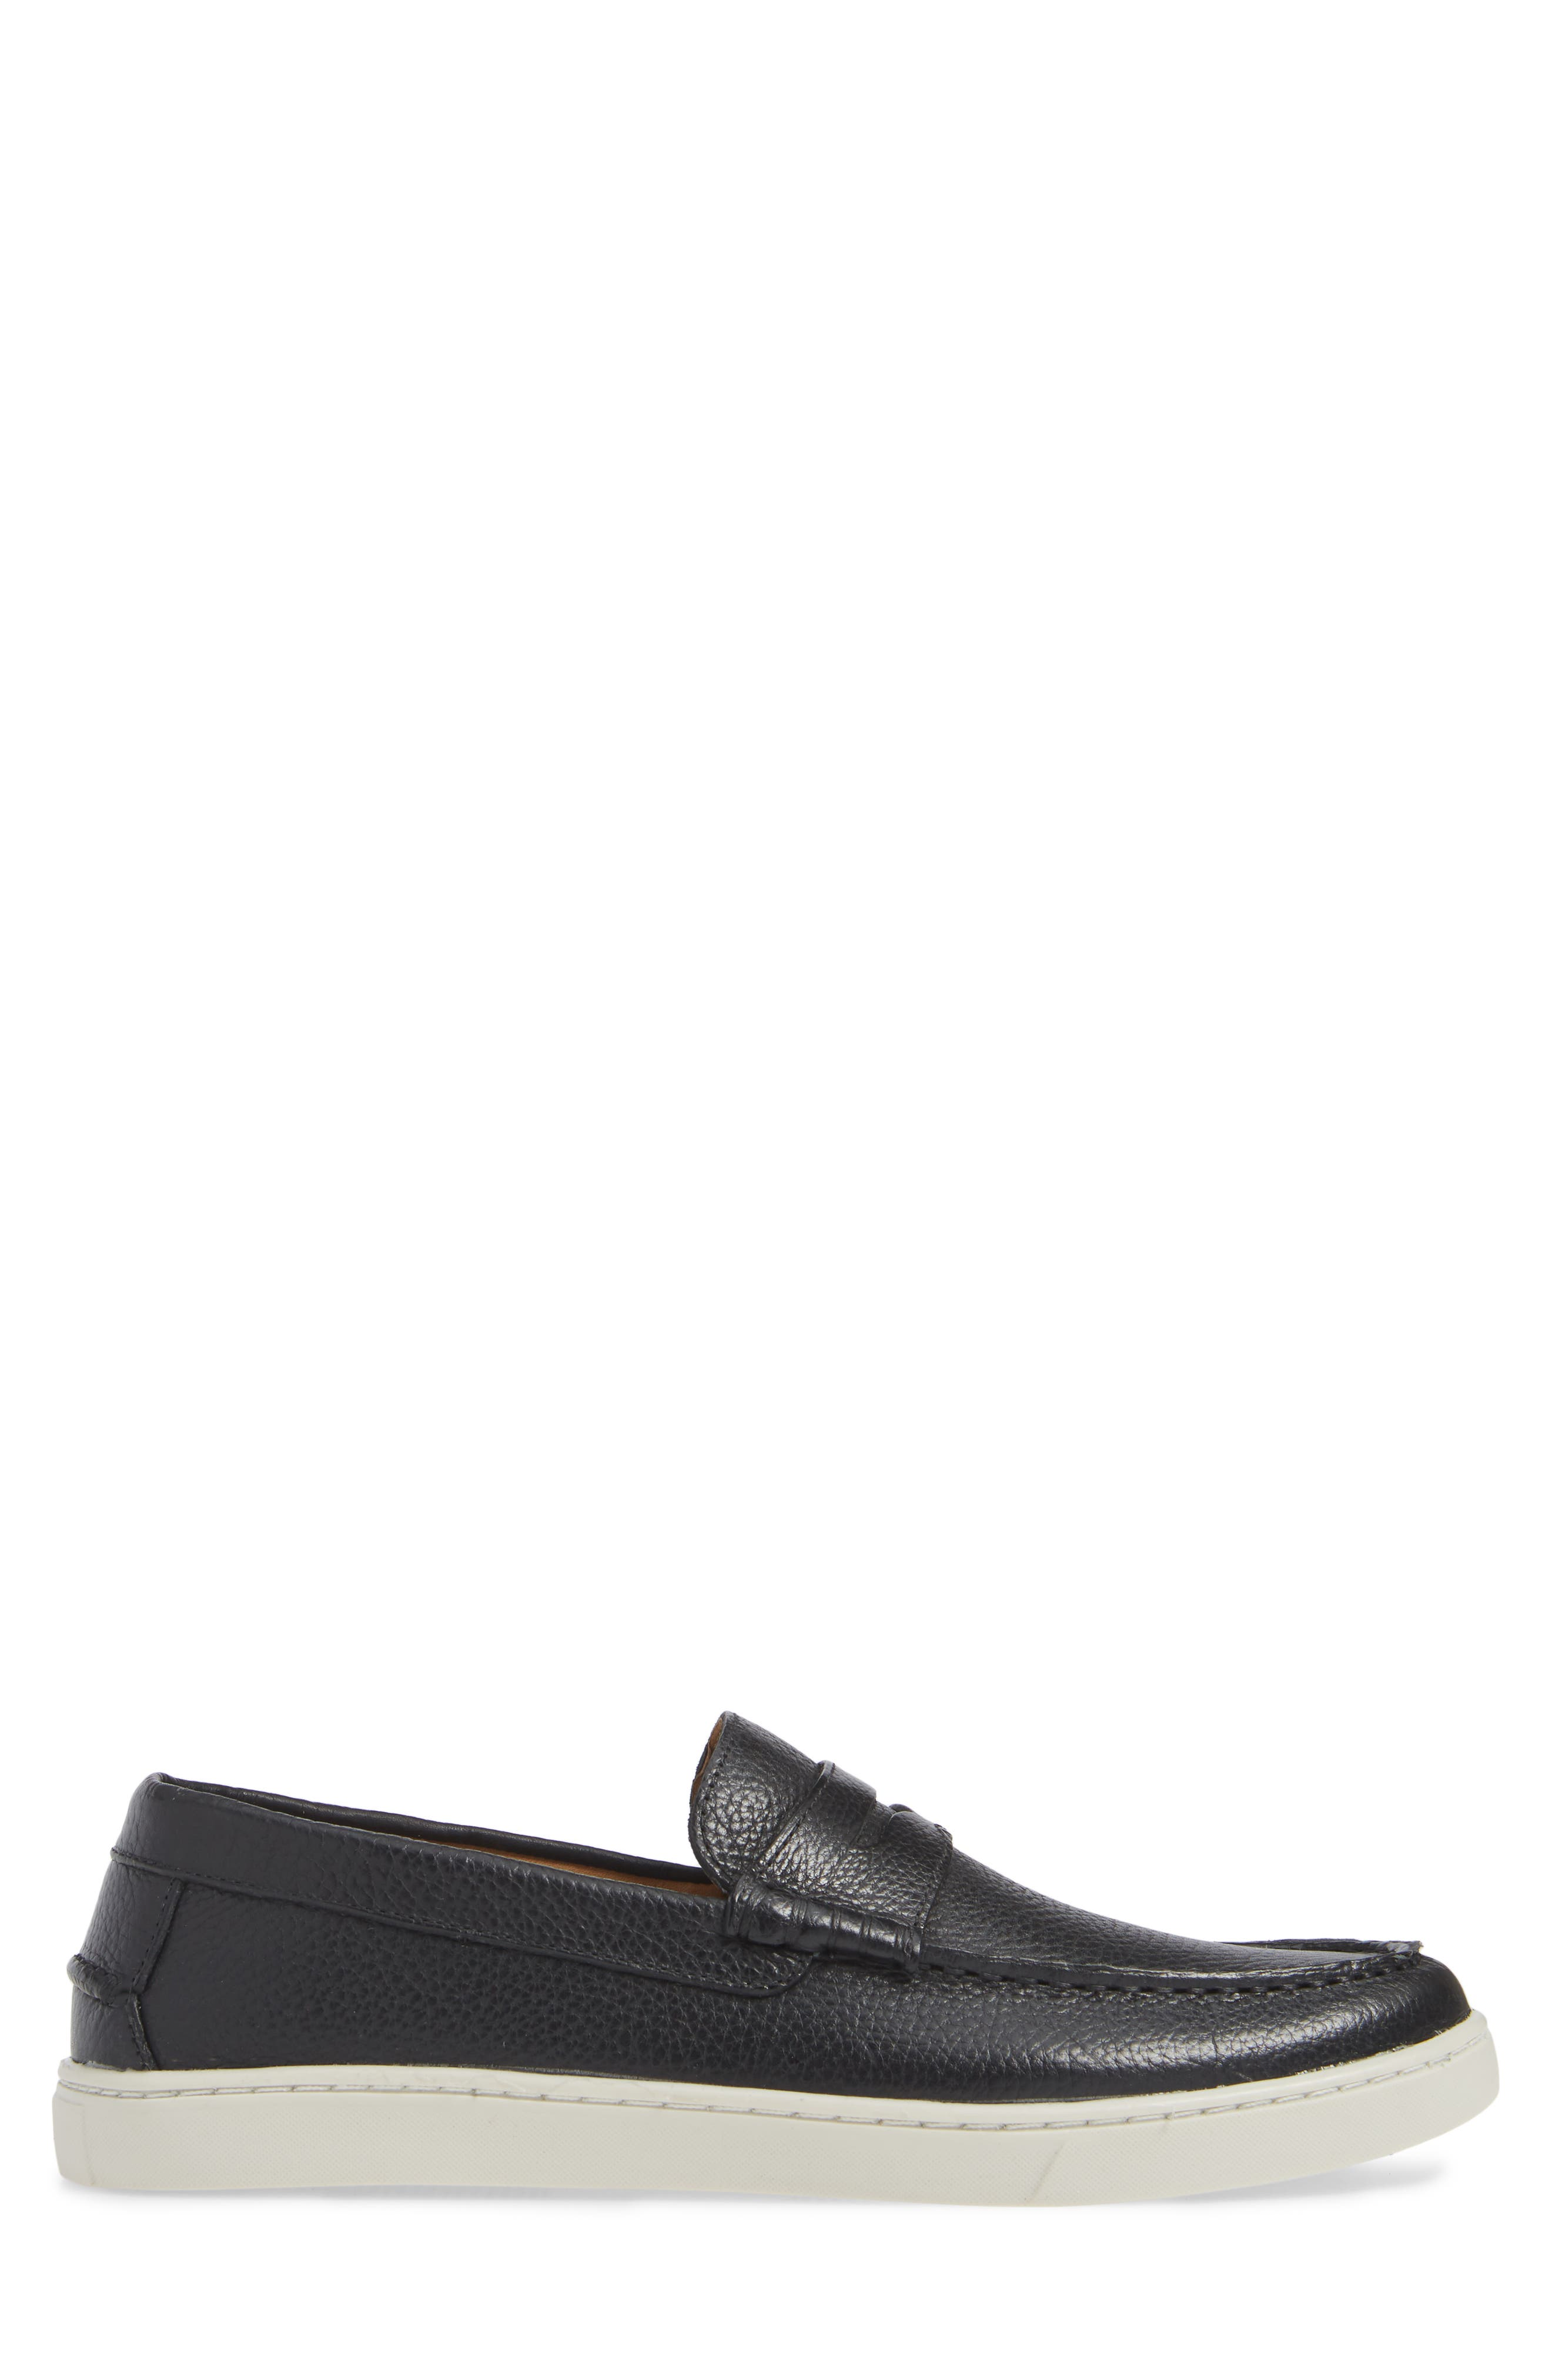 Chelan Penny Loafer,                             Alternate thumbnail 3, color,                             BLACK LEATHER